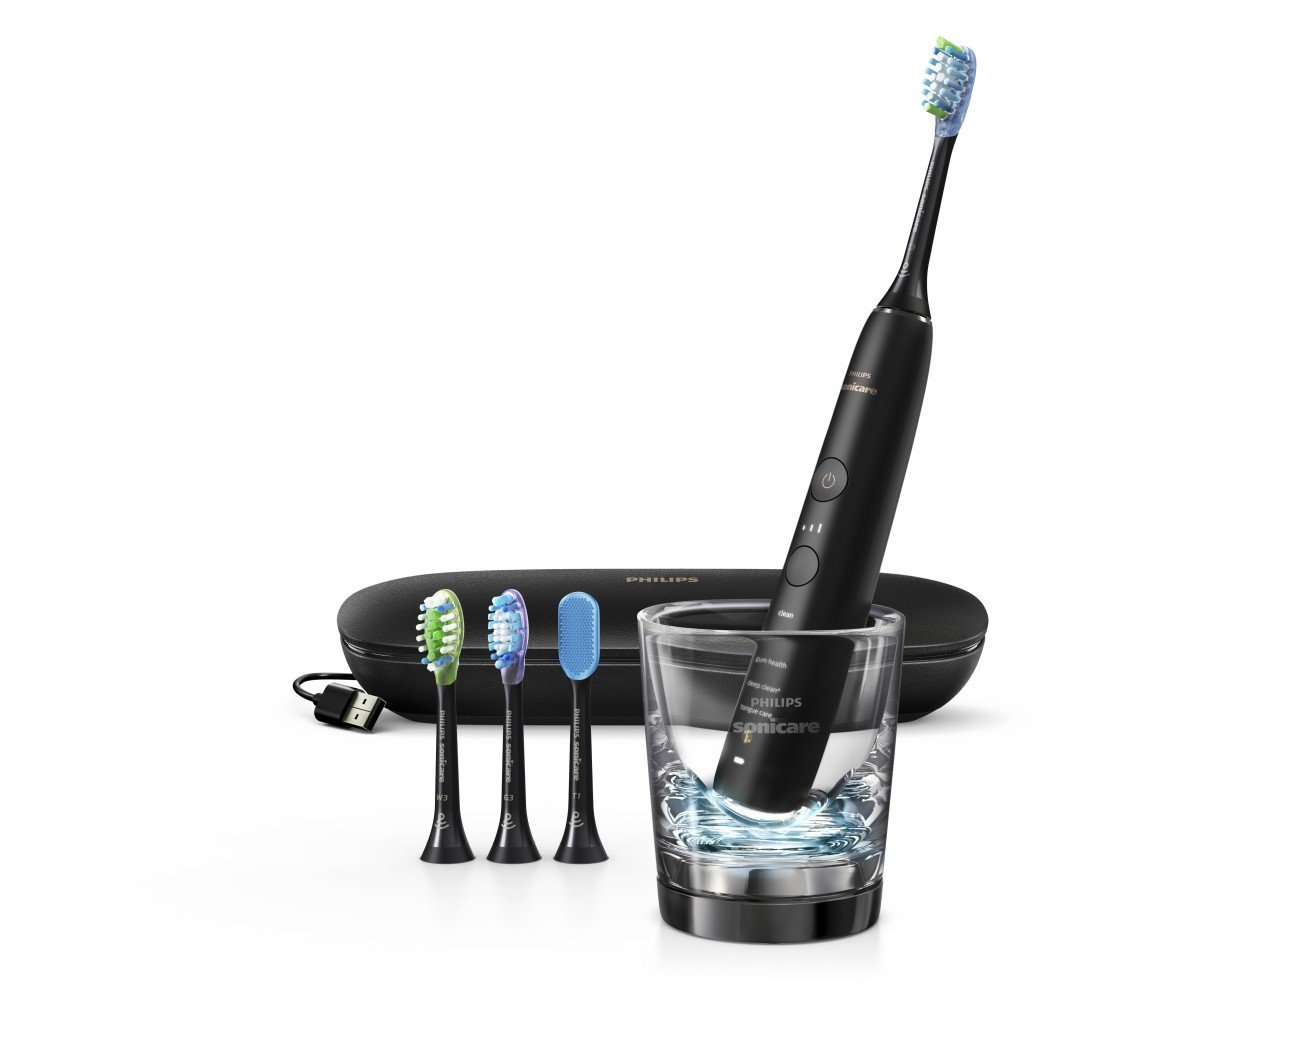 Philips Sonicare DiamondClean Smart Electric, Rechargeable toothbrush for Complete Oral Care, with Charging Travel Case, 5 modes – 9500 Series, Black, HX9924/11